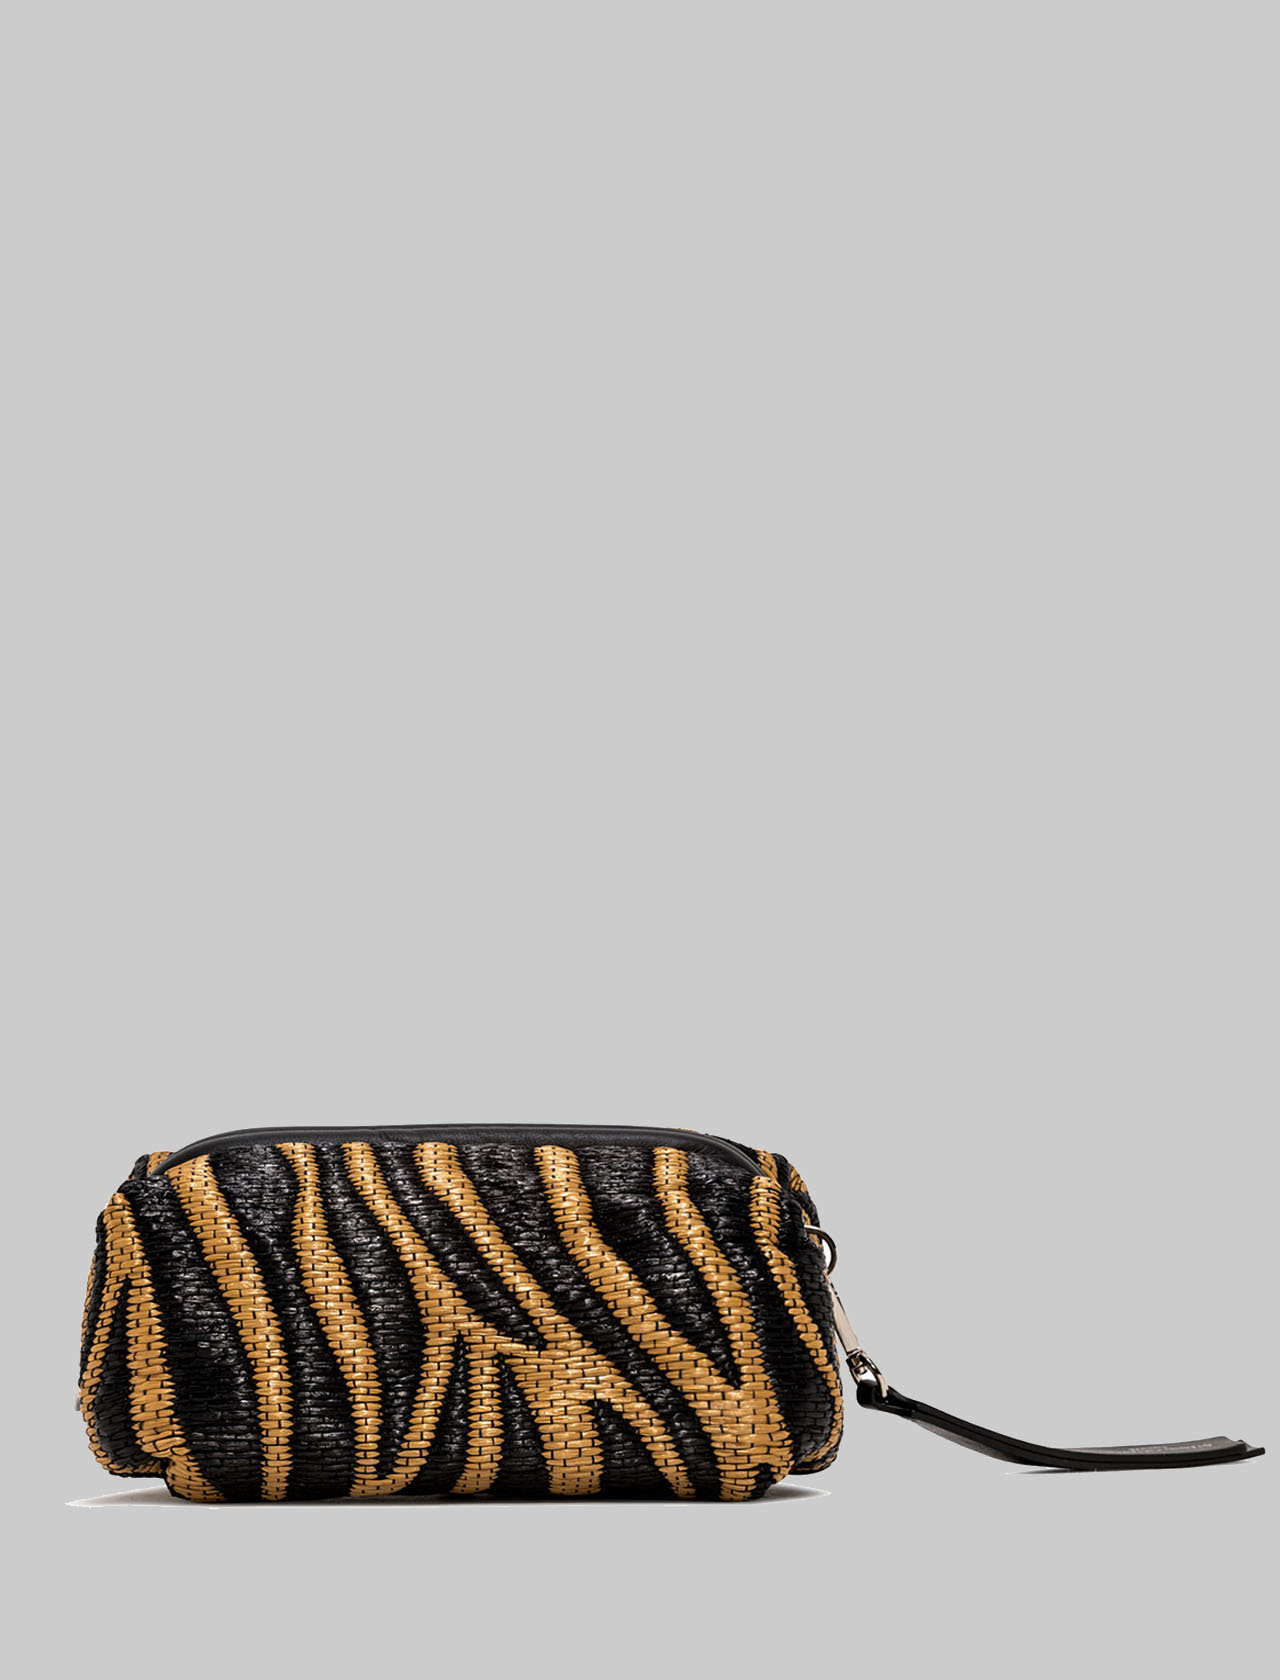 Small Colette Woman Bag In Brown And Black Animalier Zebra Fabric And Leather With Chain And Removable And Adjustable Shoulder Strap Gianni Chiarini | Bags and backpacks | BS840411870